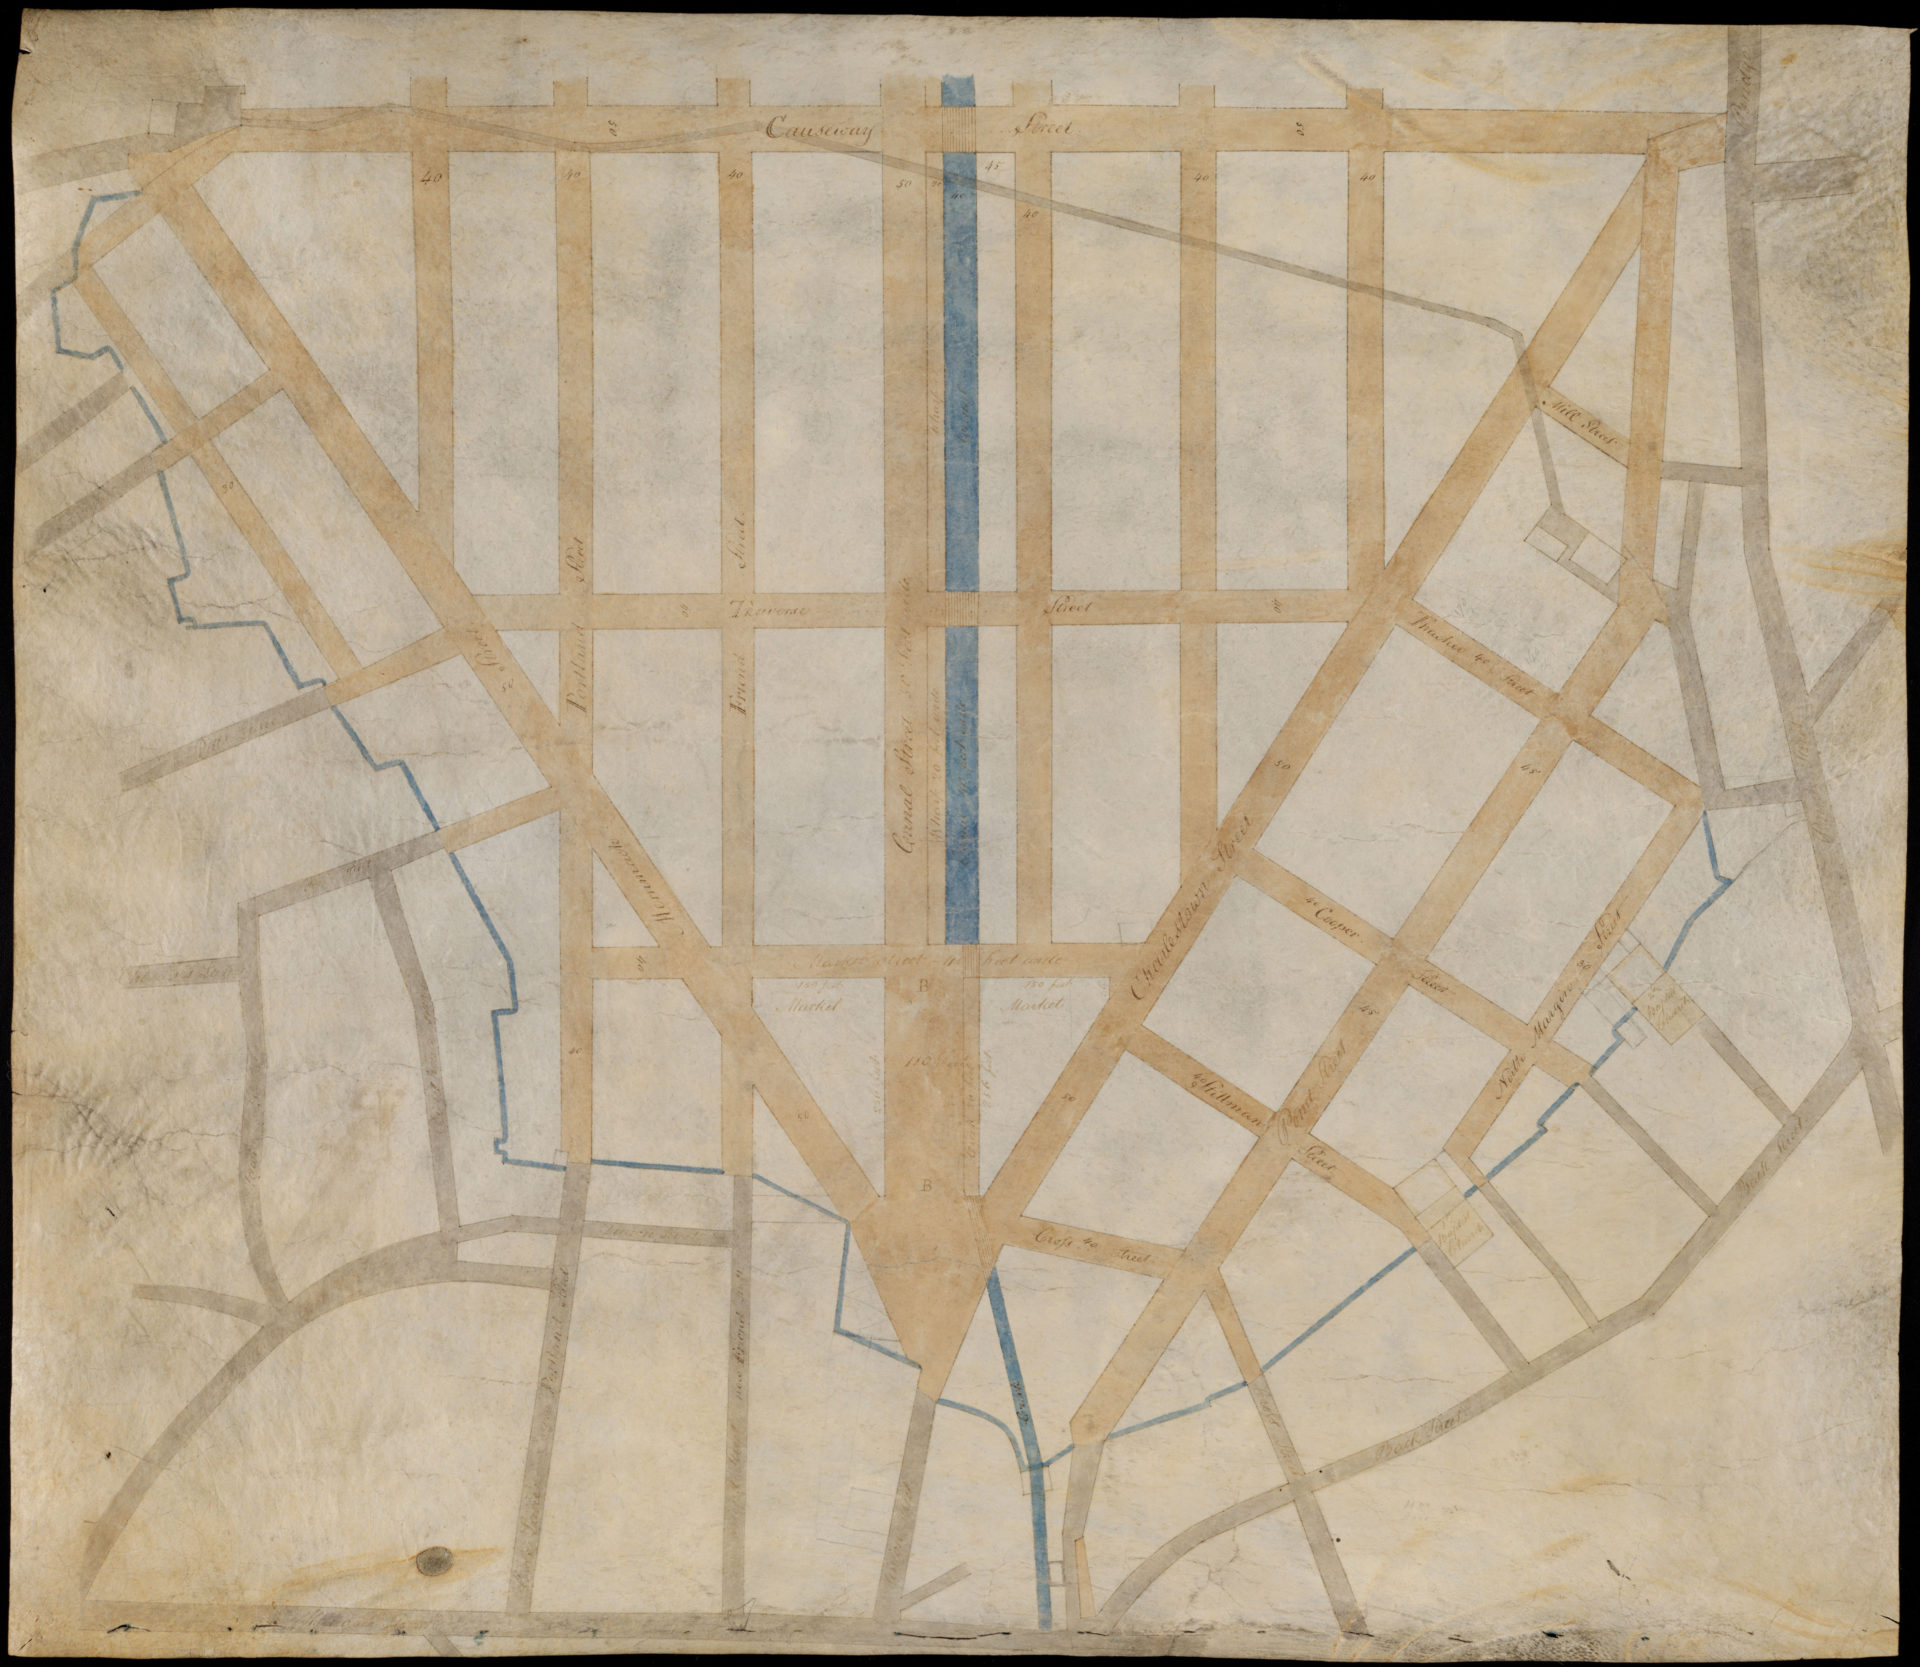 Charles Bulfinch, Manuscript plan of the Bulfinch Triangle,1807. (Courtesy the Muriel G. and Norman B. Leventhal Family Foundation)